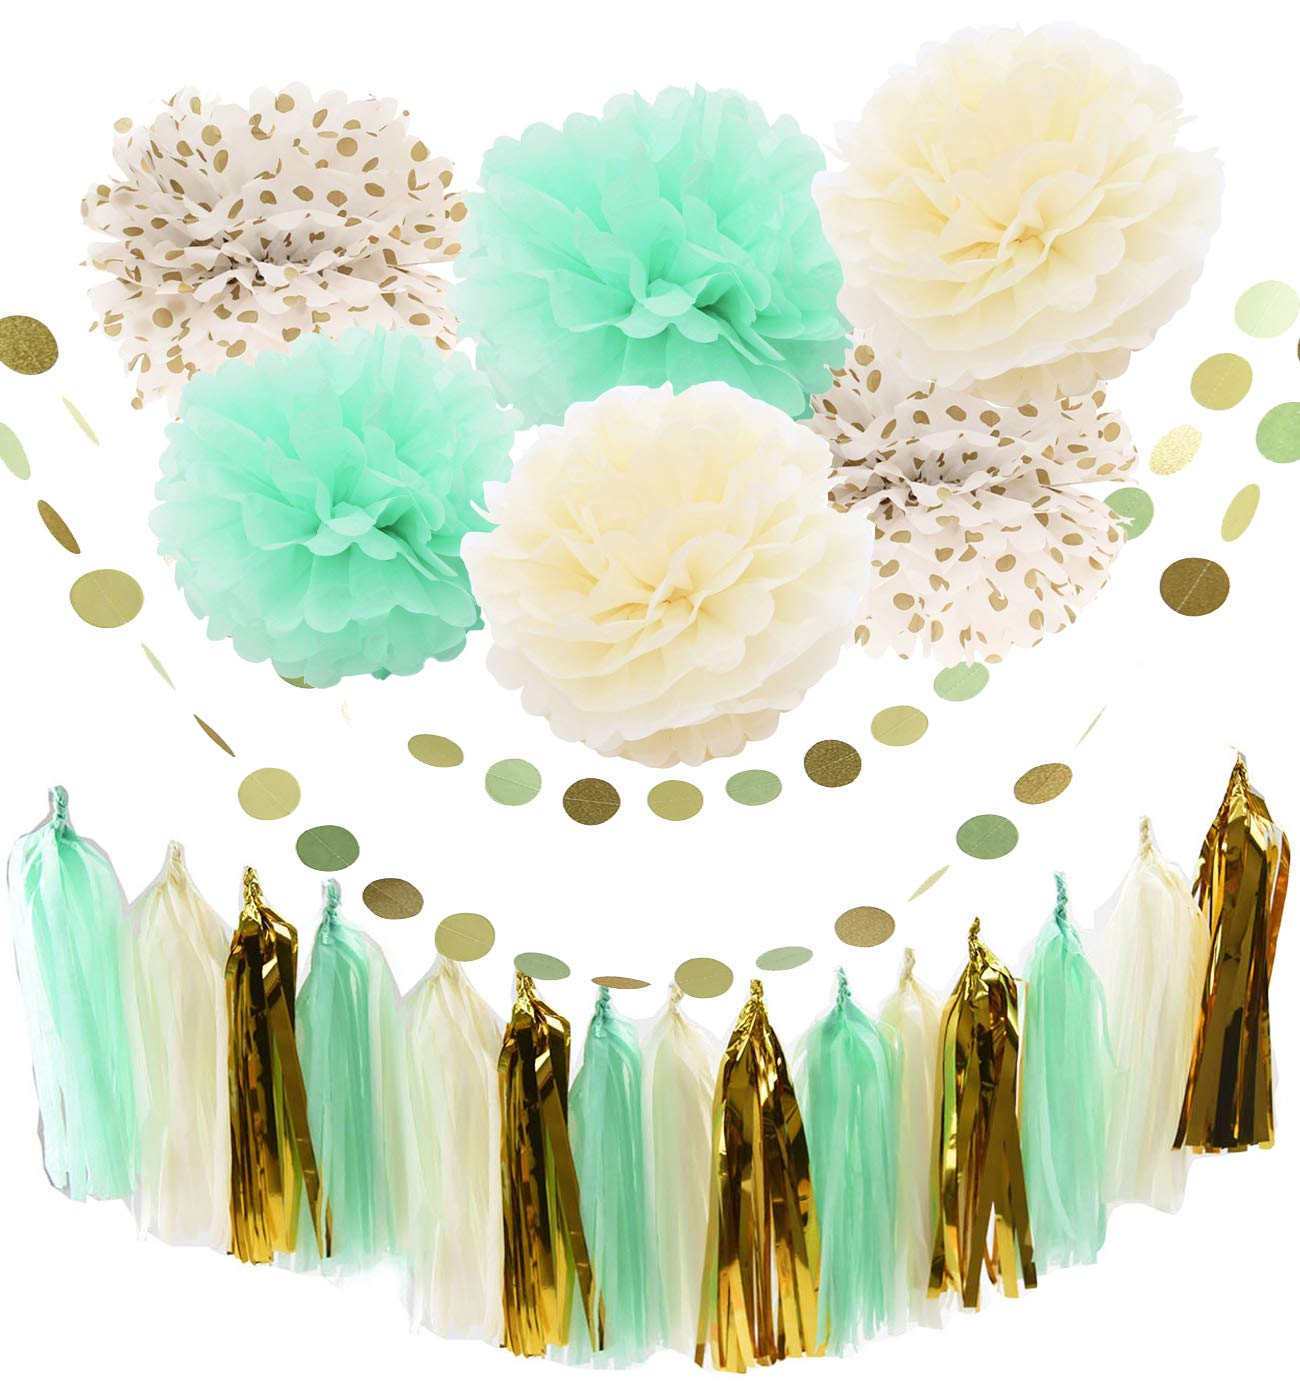 20pcs Mint Cream Gold Party Decoration Kit With Tissue Paper Tassel Garland Tissue Paper Flower Circle Garland for Rustic Wedding Baby Shower, Birthday Party, Nursery Decoration furunxin FBA_MCG-Series